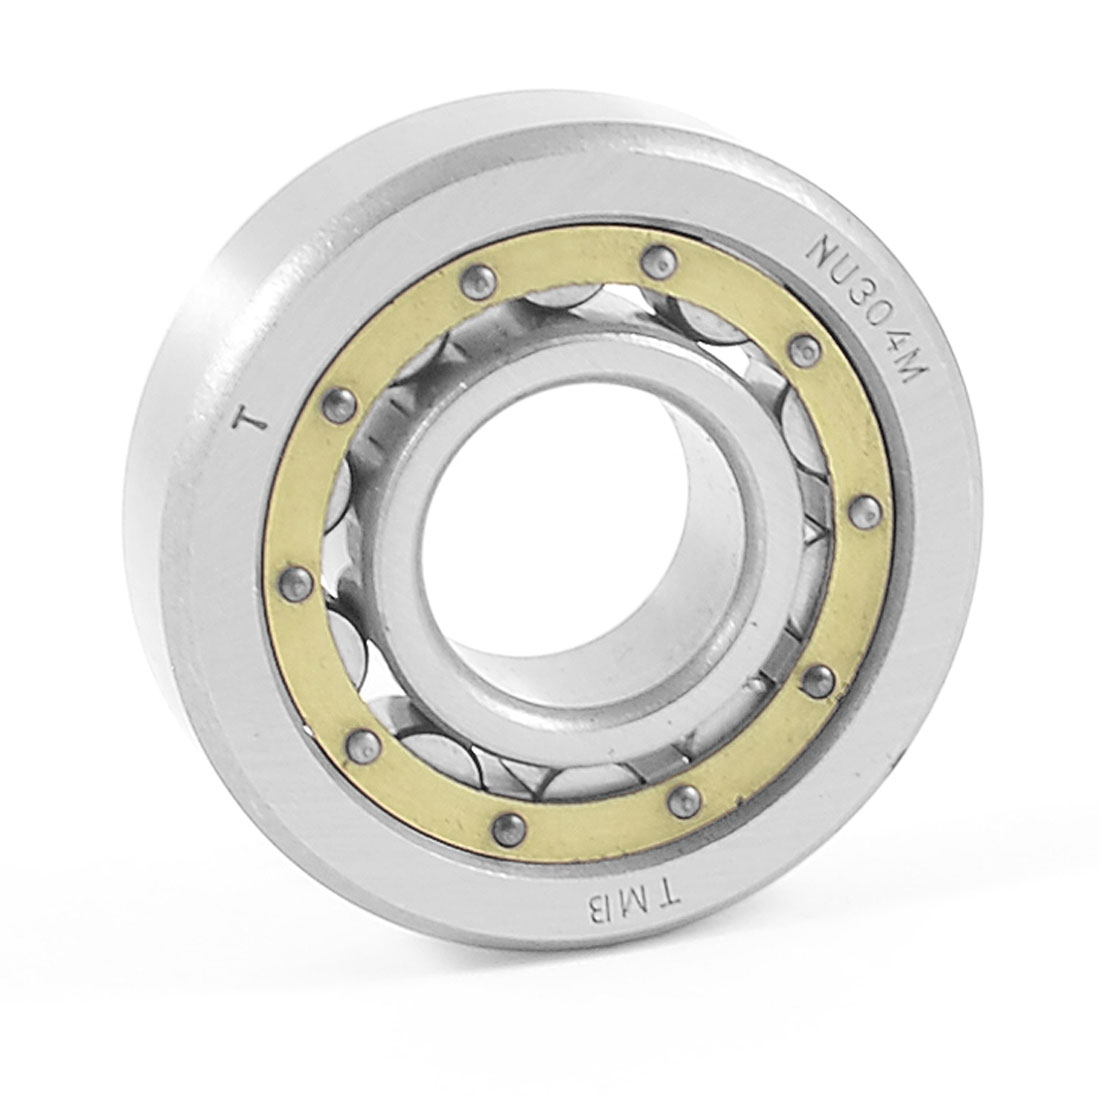 Auto Single Row Cylindrical Roller Bearing 22mm x 50mm x 13mm NU304M